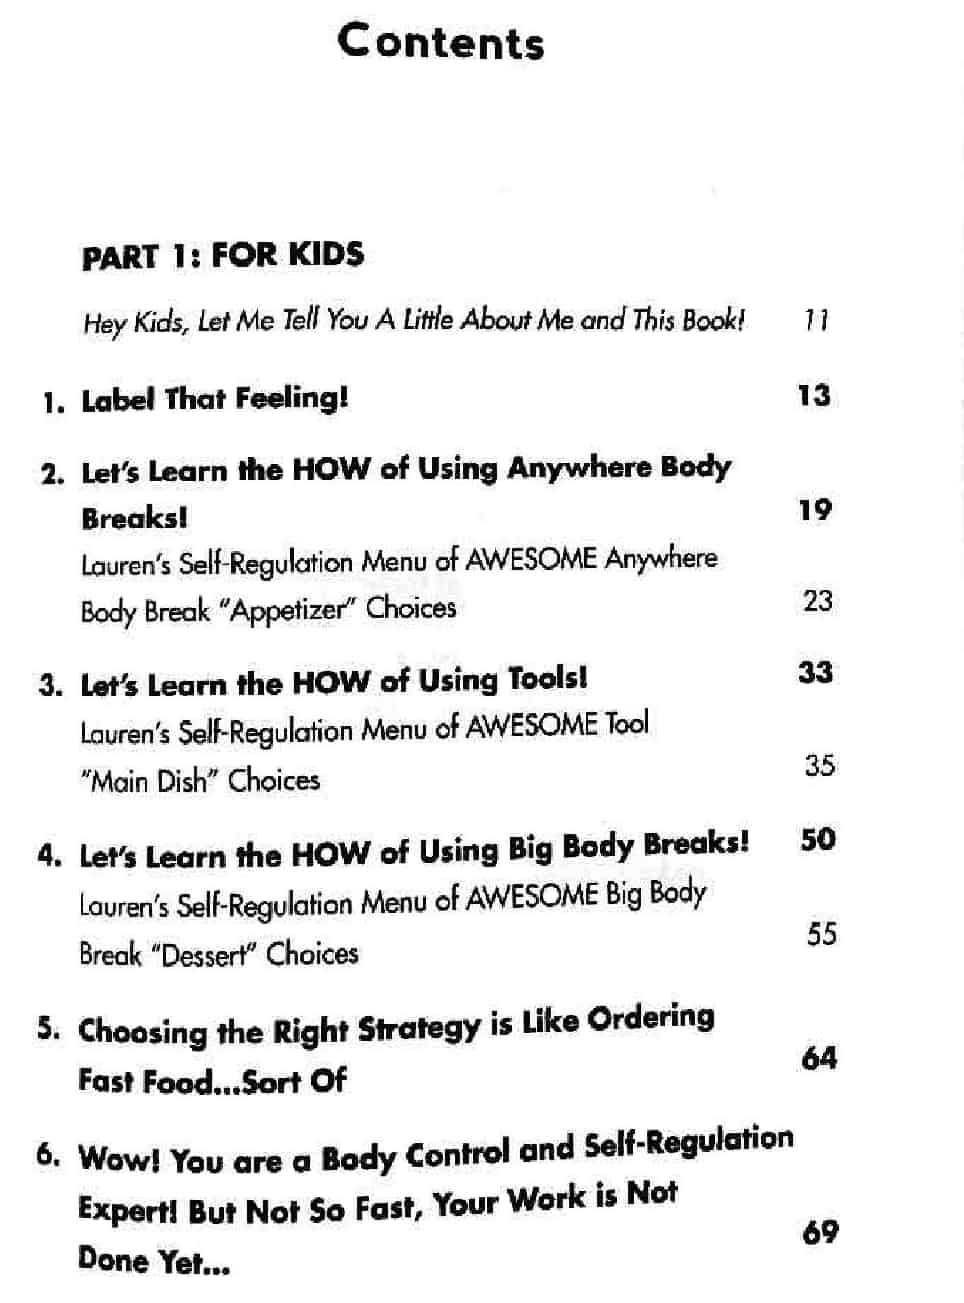 The kids guide to staying awesome - table of contents